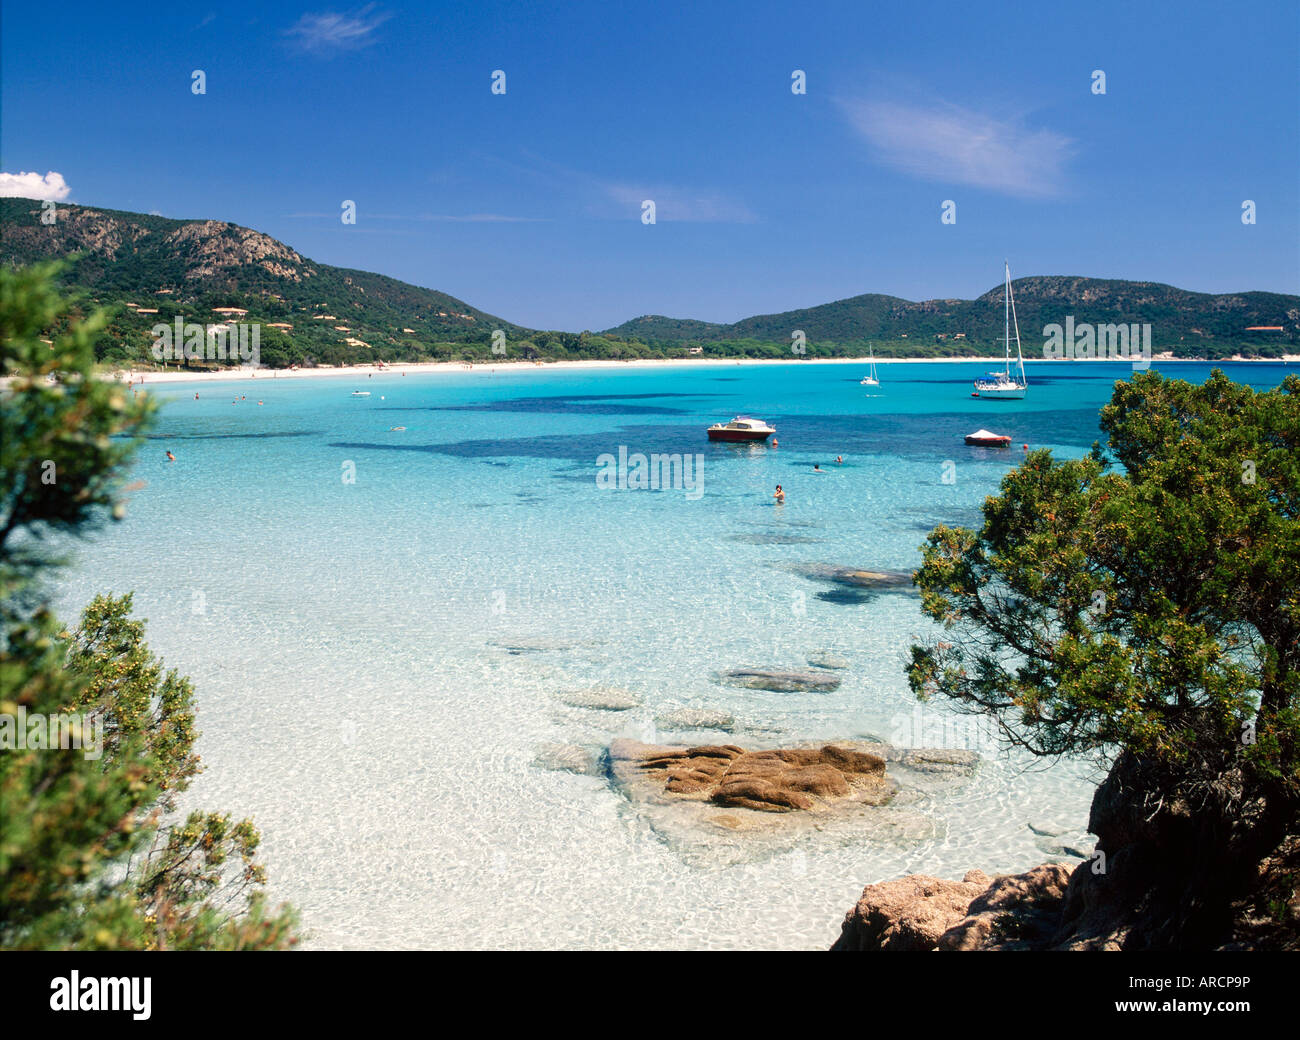 palombaggia beach porto vecchio corsica france stock photo 16013649 alamy. Black Bedroom Furniture Sets. Home Design Ideas